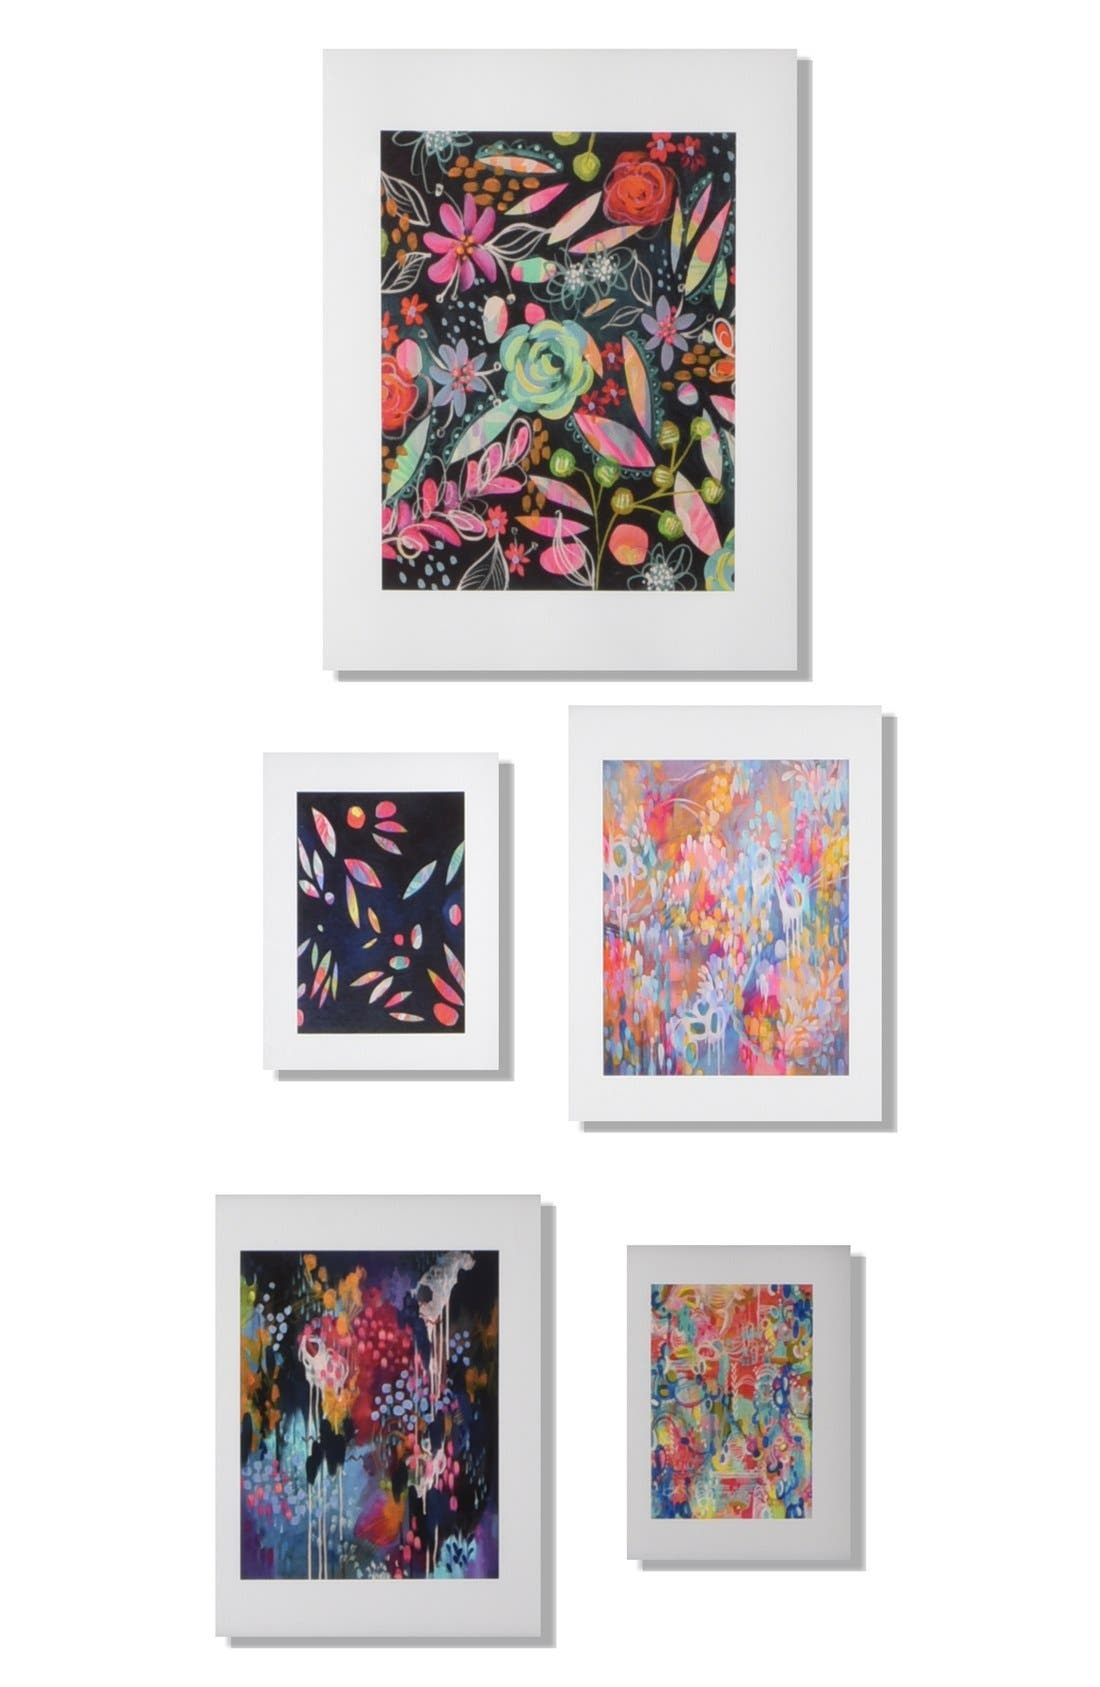 Alternate Image 1 Selected - Deny Designs 'Twilight' Wall Art Gallery (Set of 5)